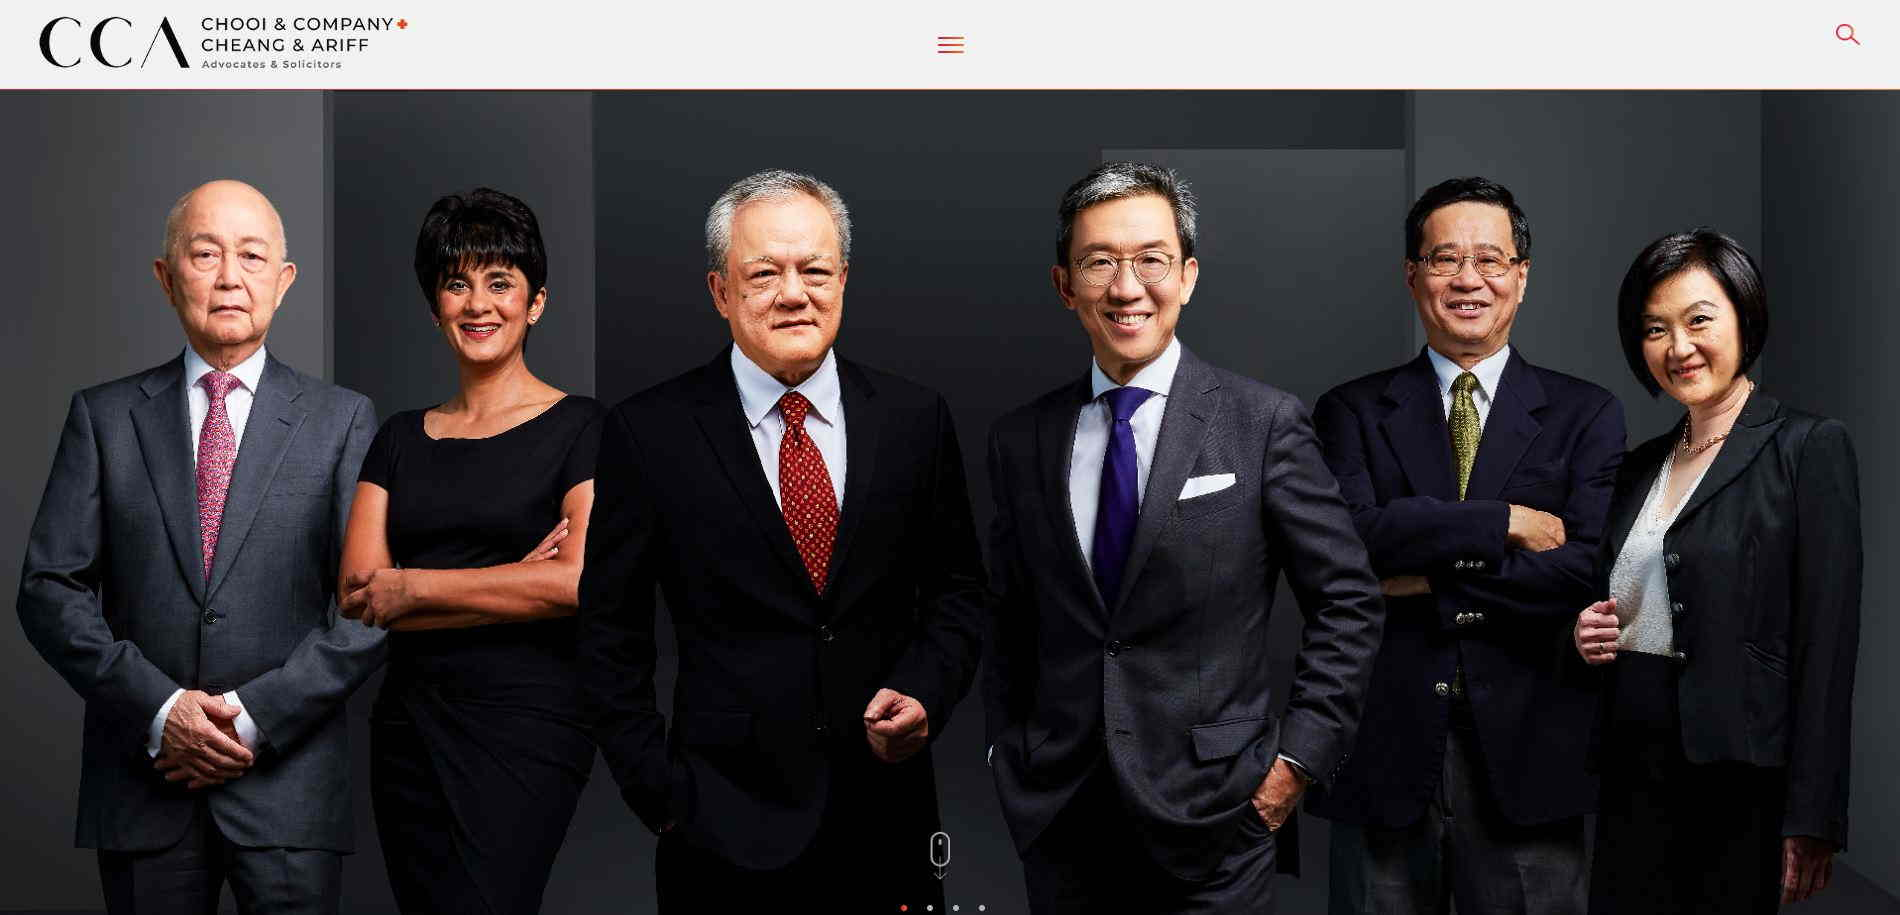 web design for lawyers_chooi